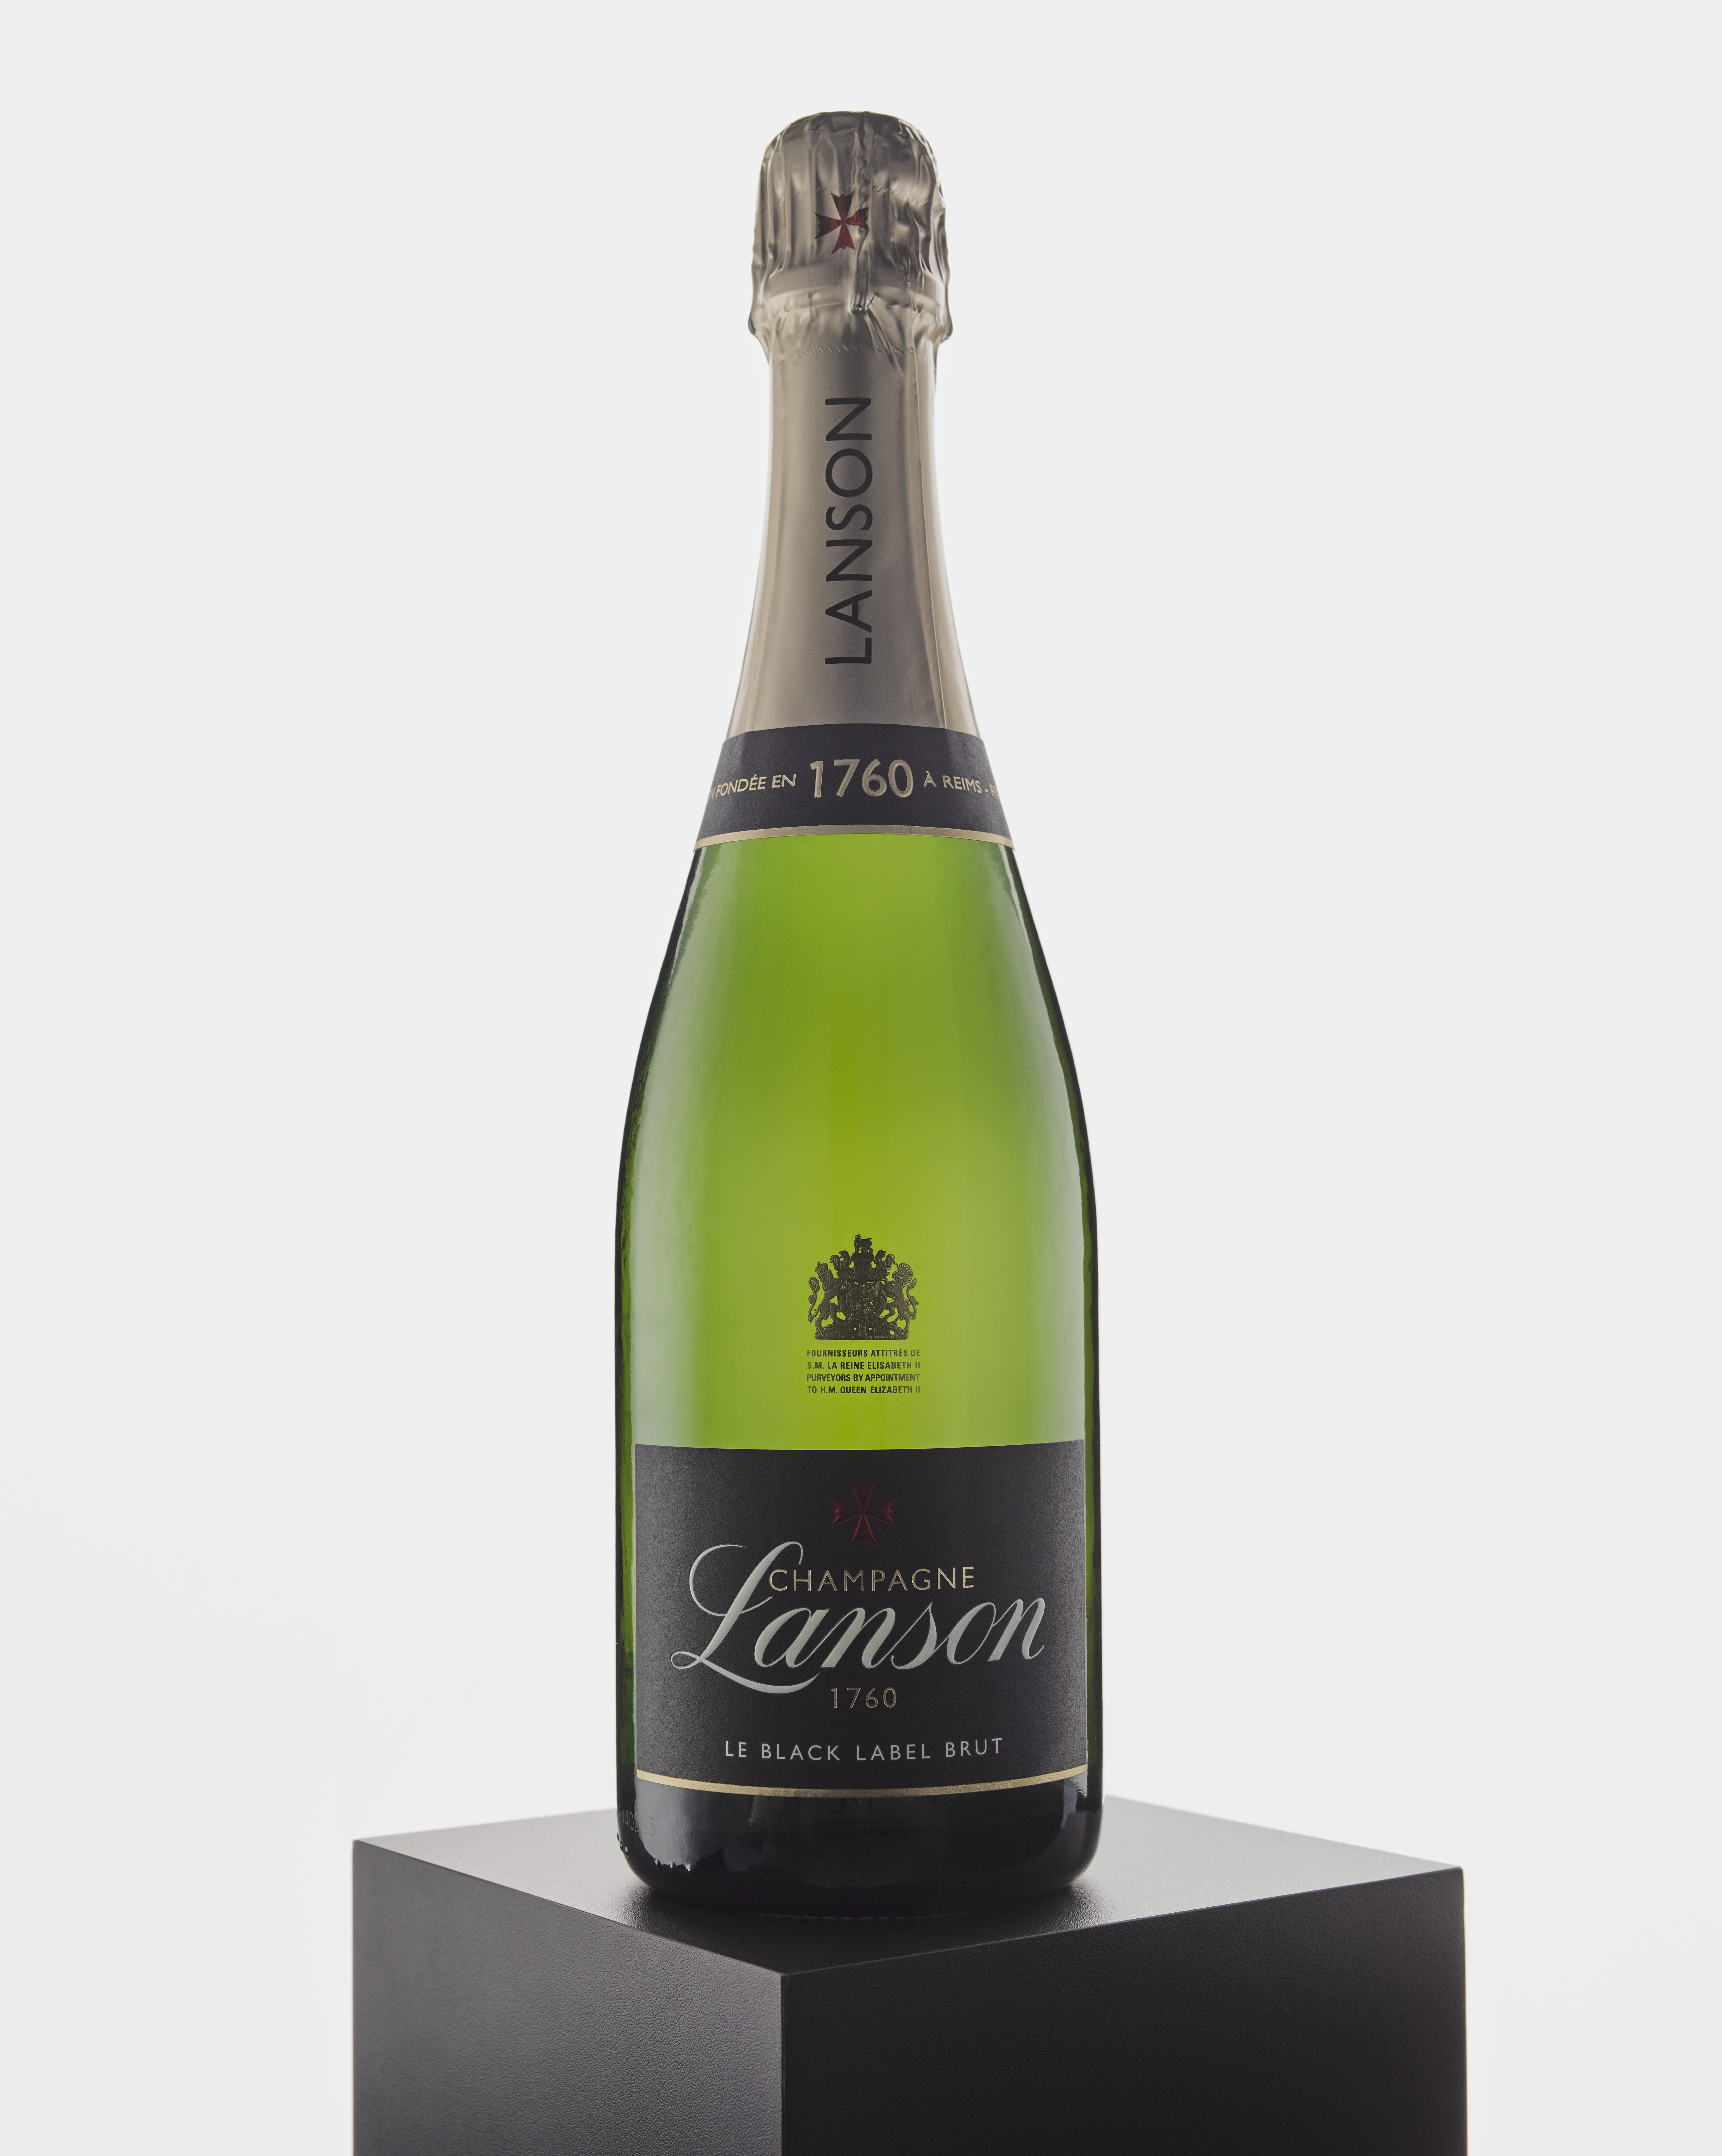 These are the best bottles of non-vintage Champagne